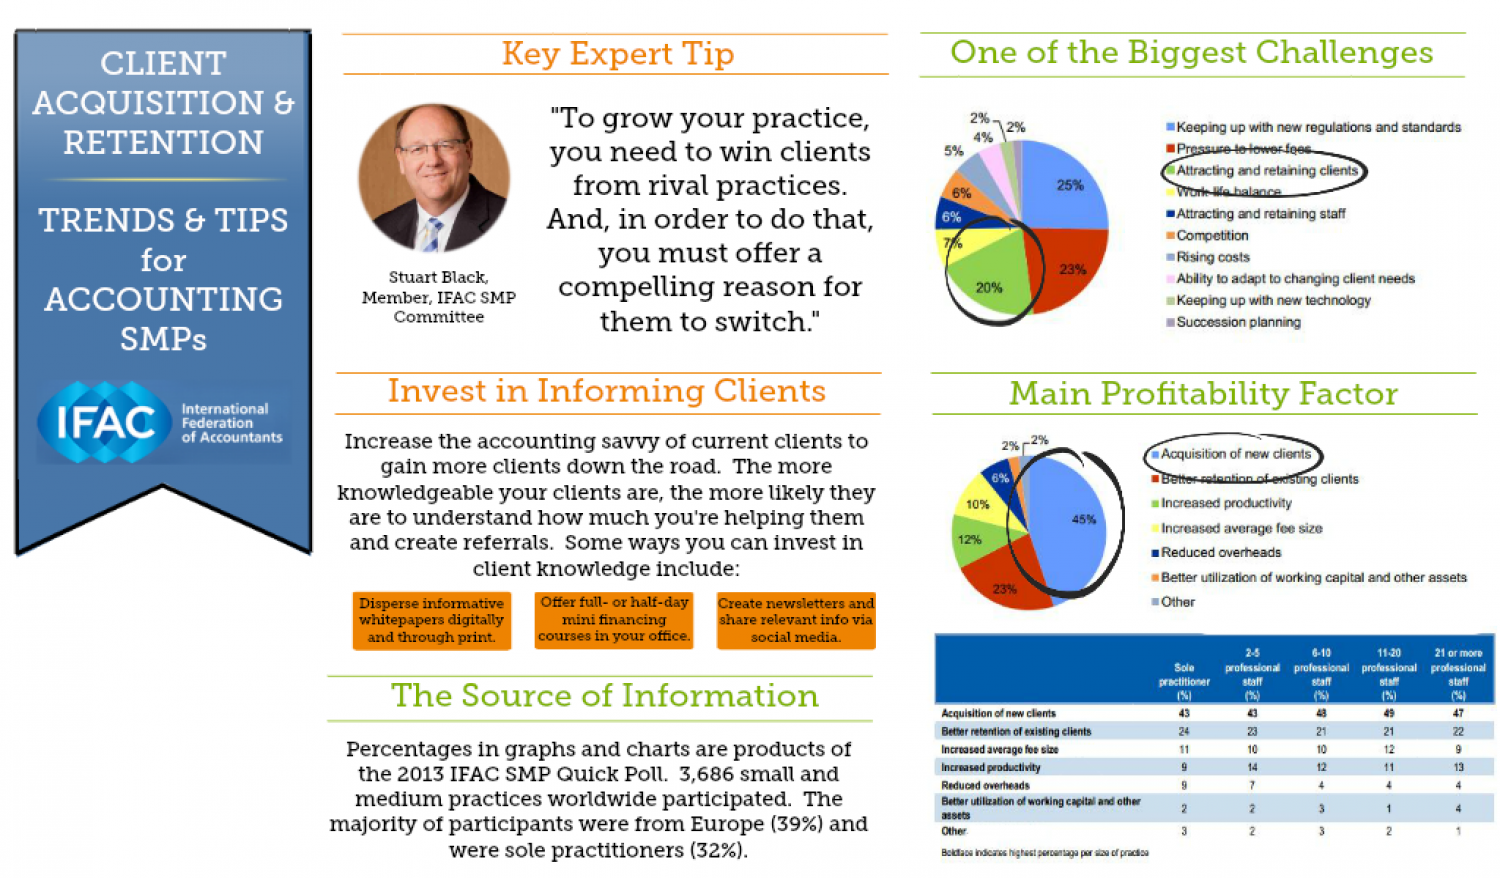 Trends & Tips for Accounting SMPs Infographic